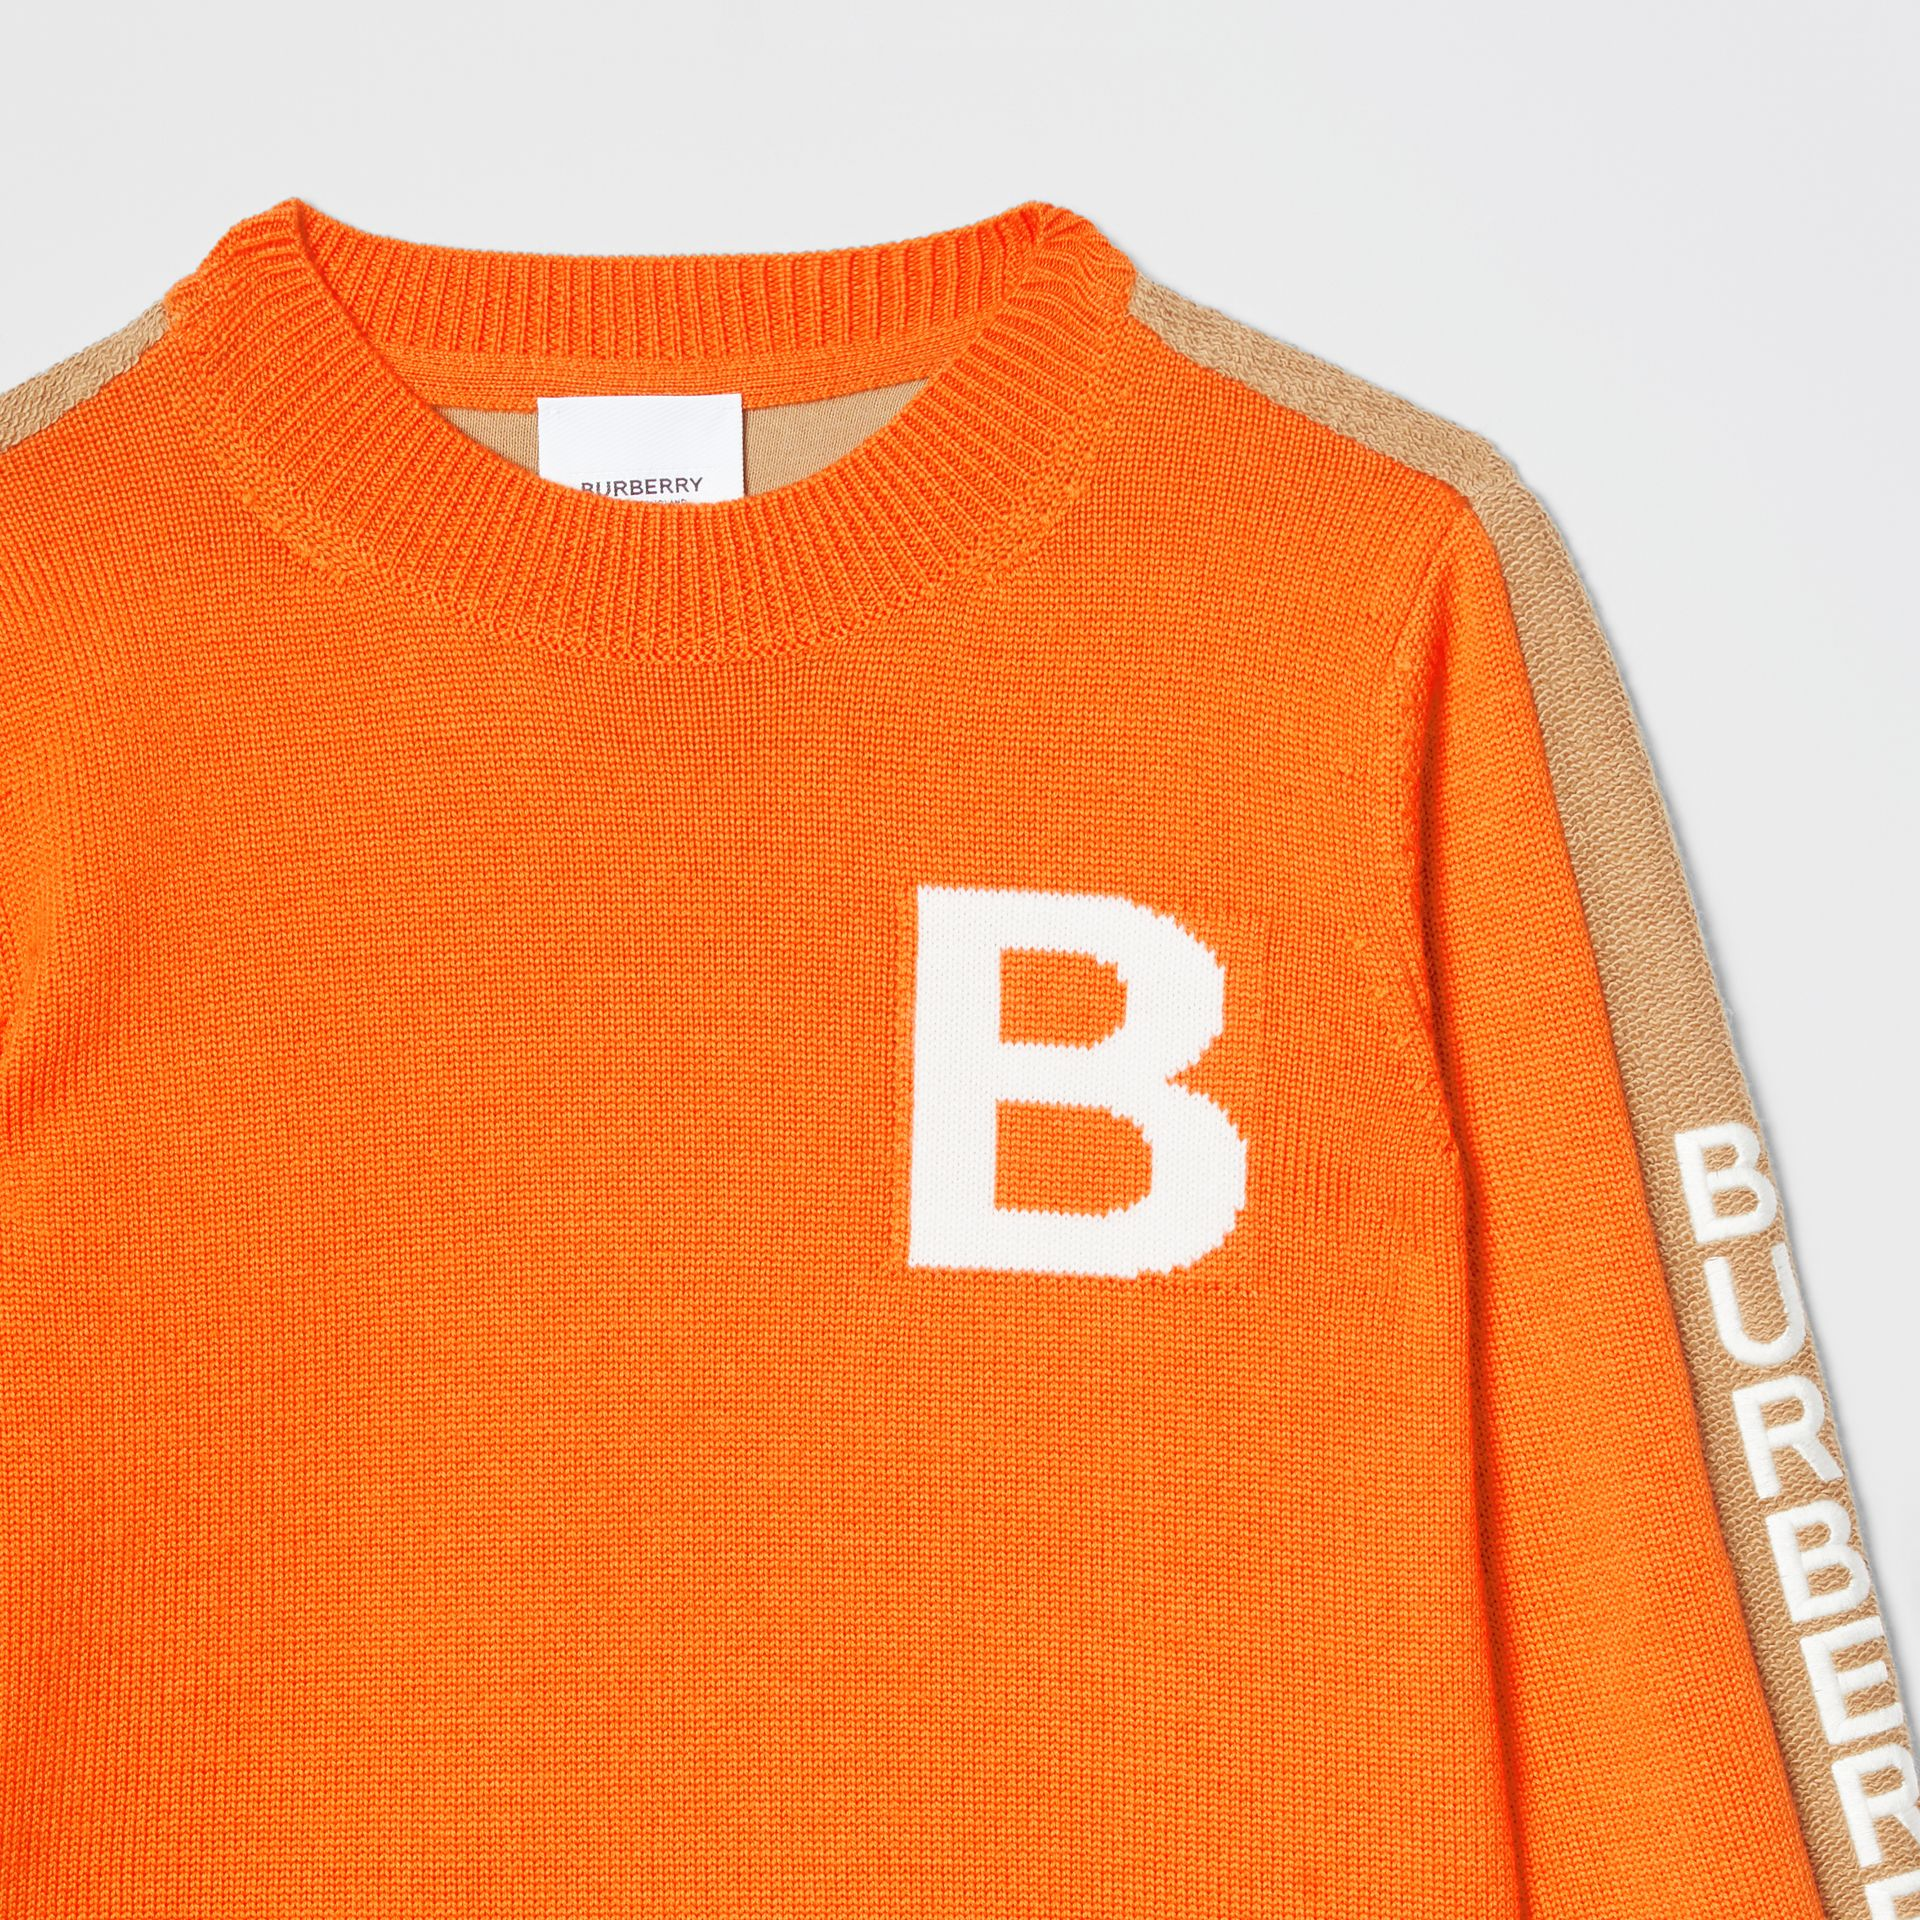 B Motif Merino Wool Jacquard Sweater in Bright Orange | Burberry United States - gallery image 5